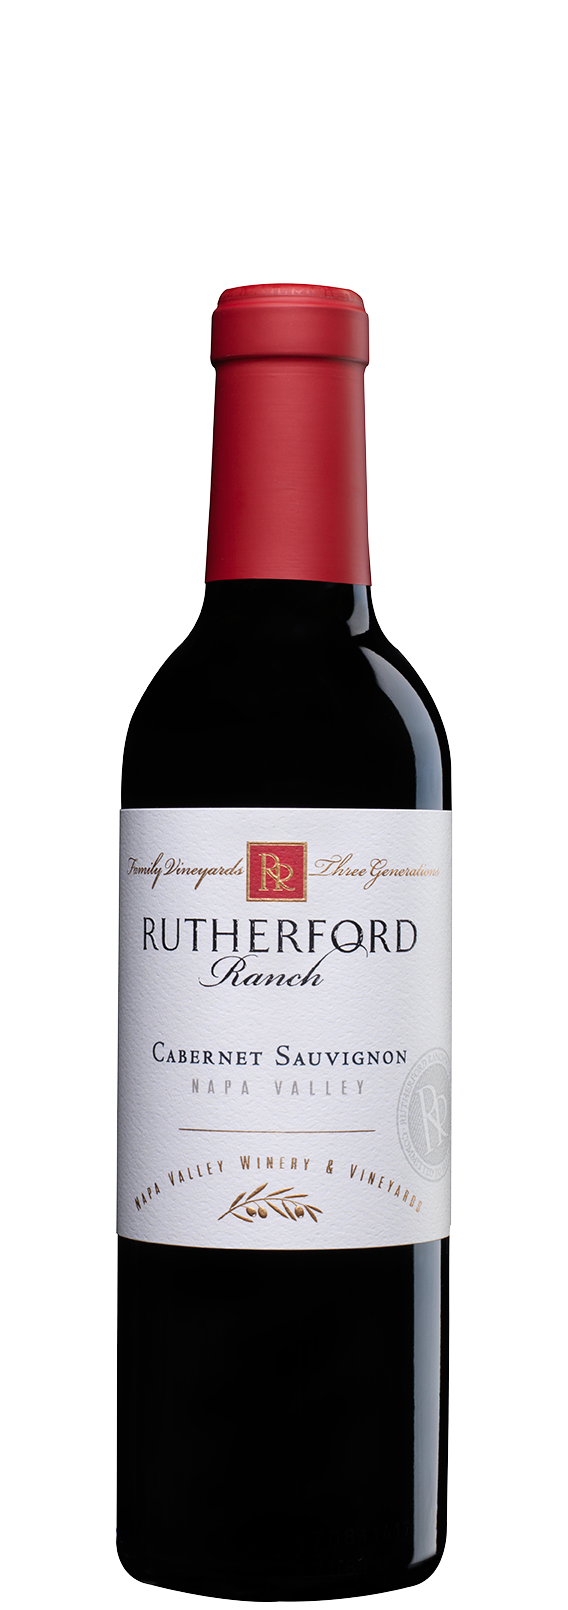 Rutherford Ranch Napa Cabernet 375ml - Rutherford Wine Co.